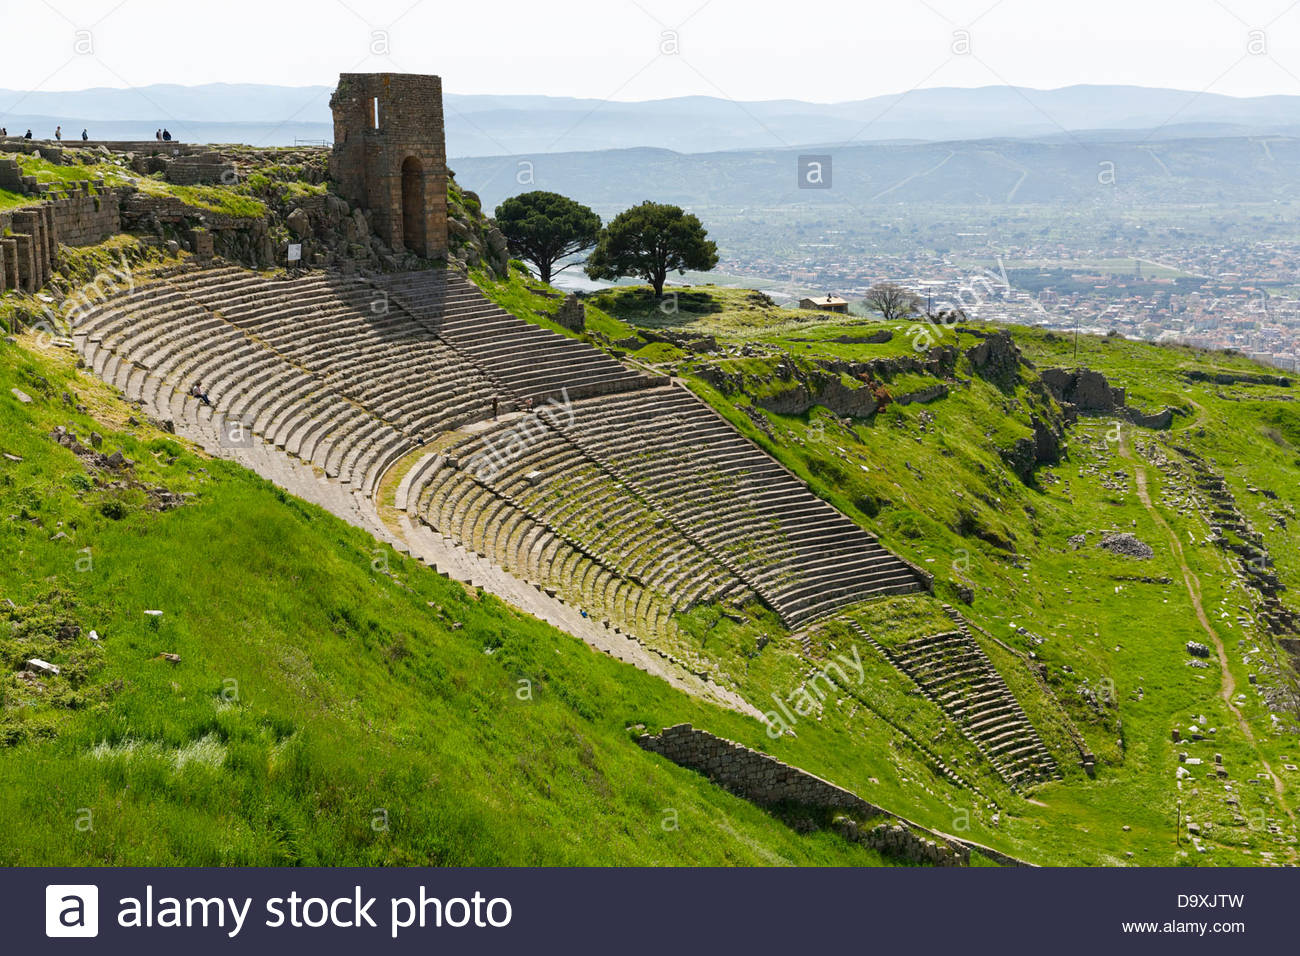 Turkey, Pergamon, View of Hellenistic Theater - Stock Image